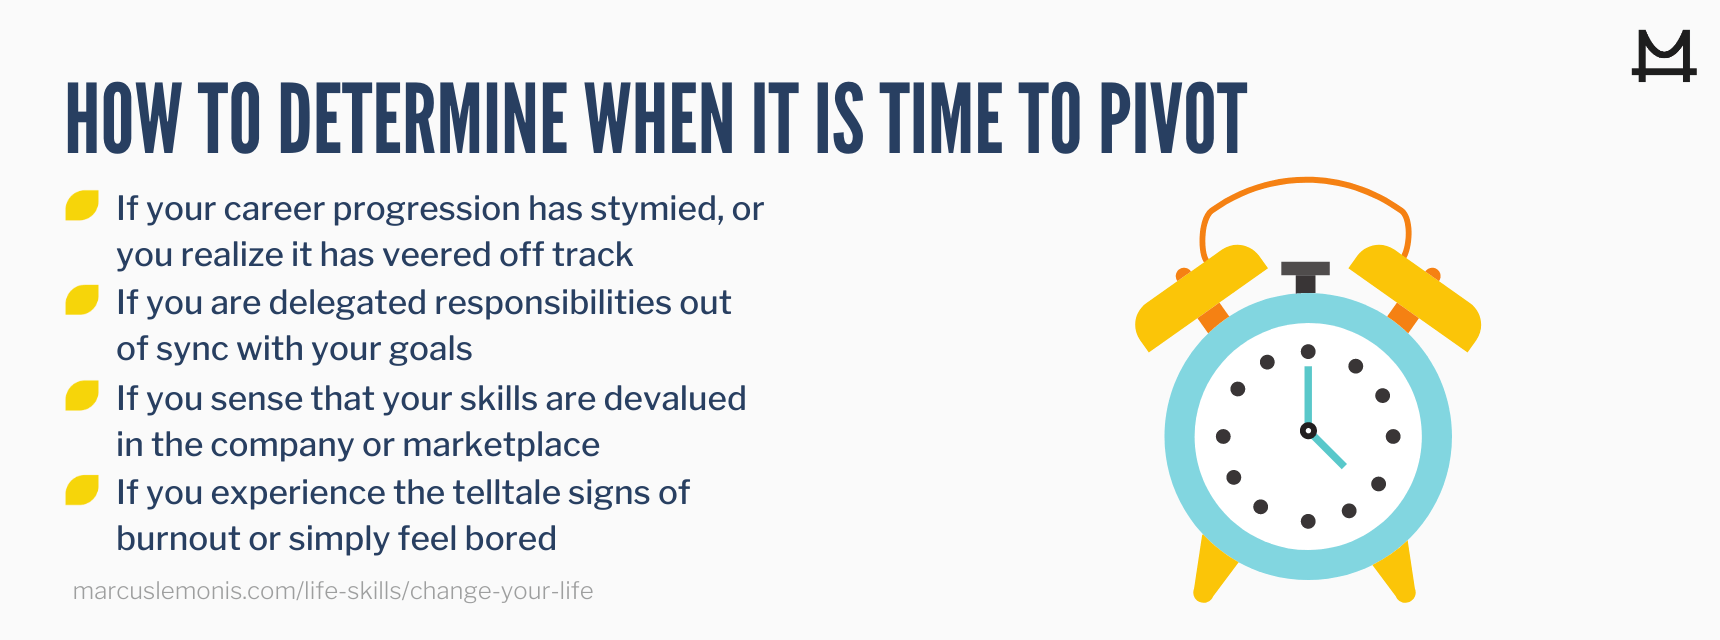 List of actions that will help you determine if it is time to pivot